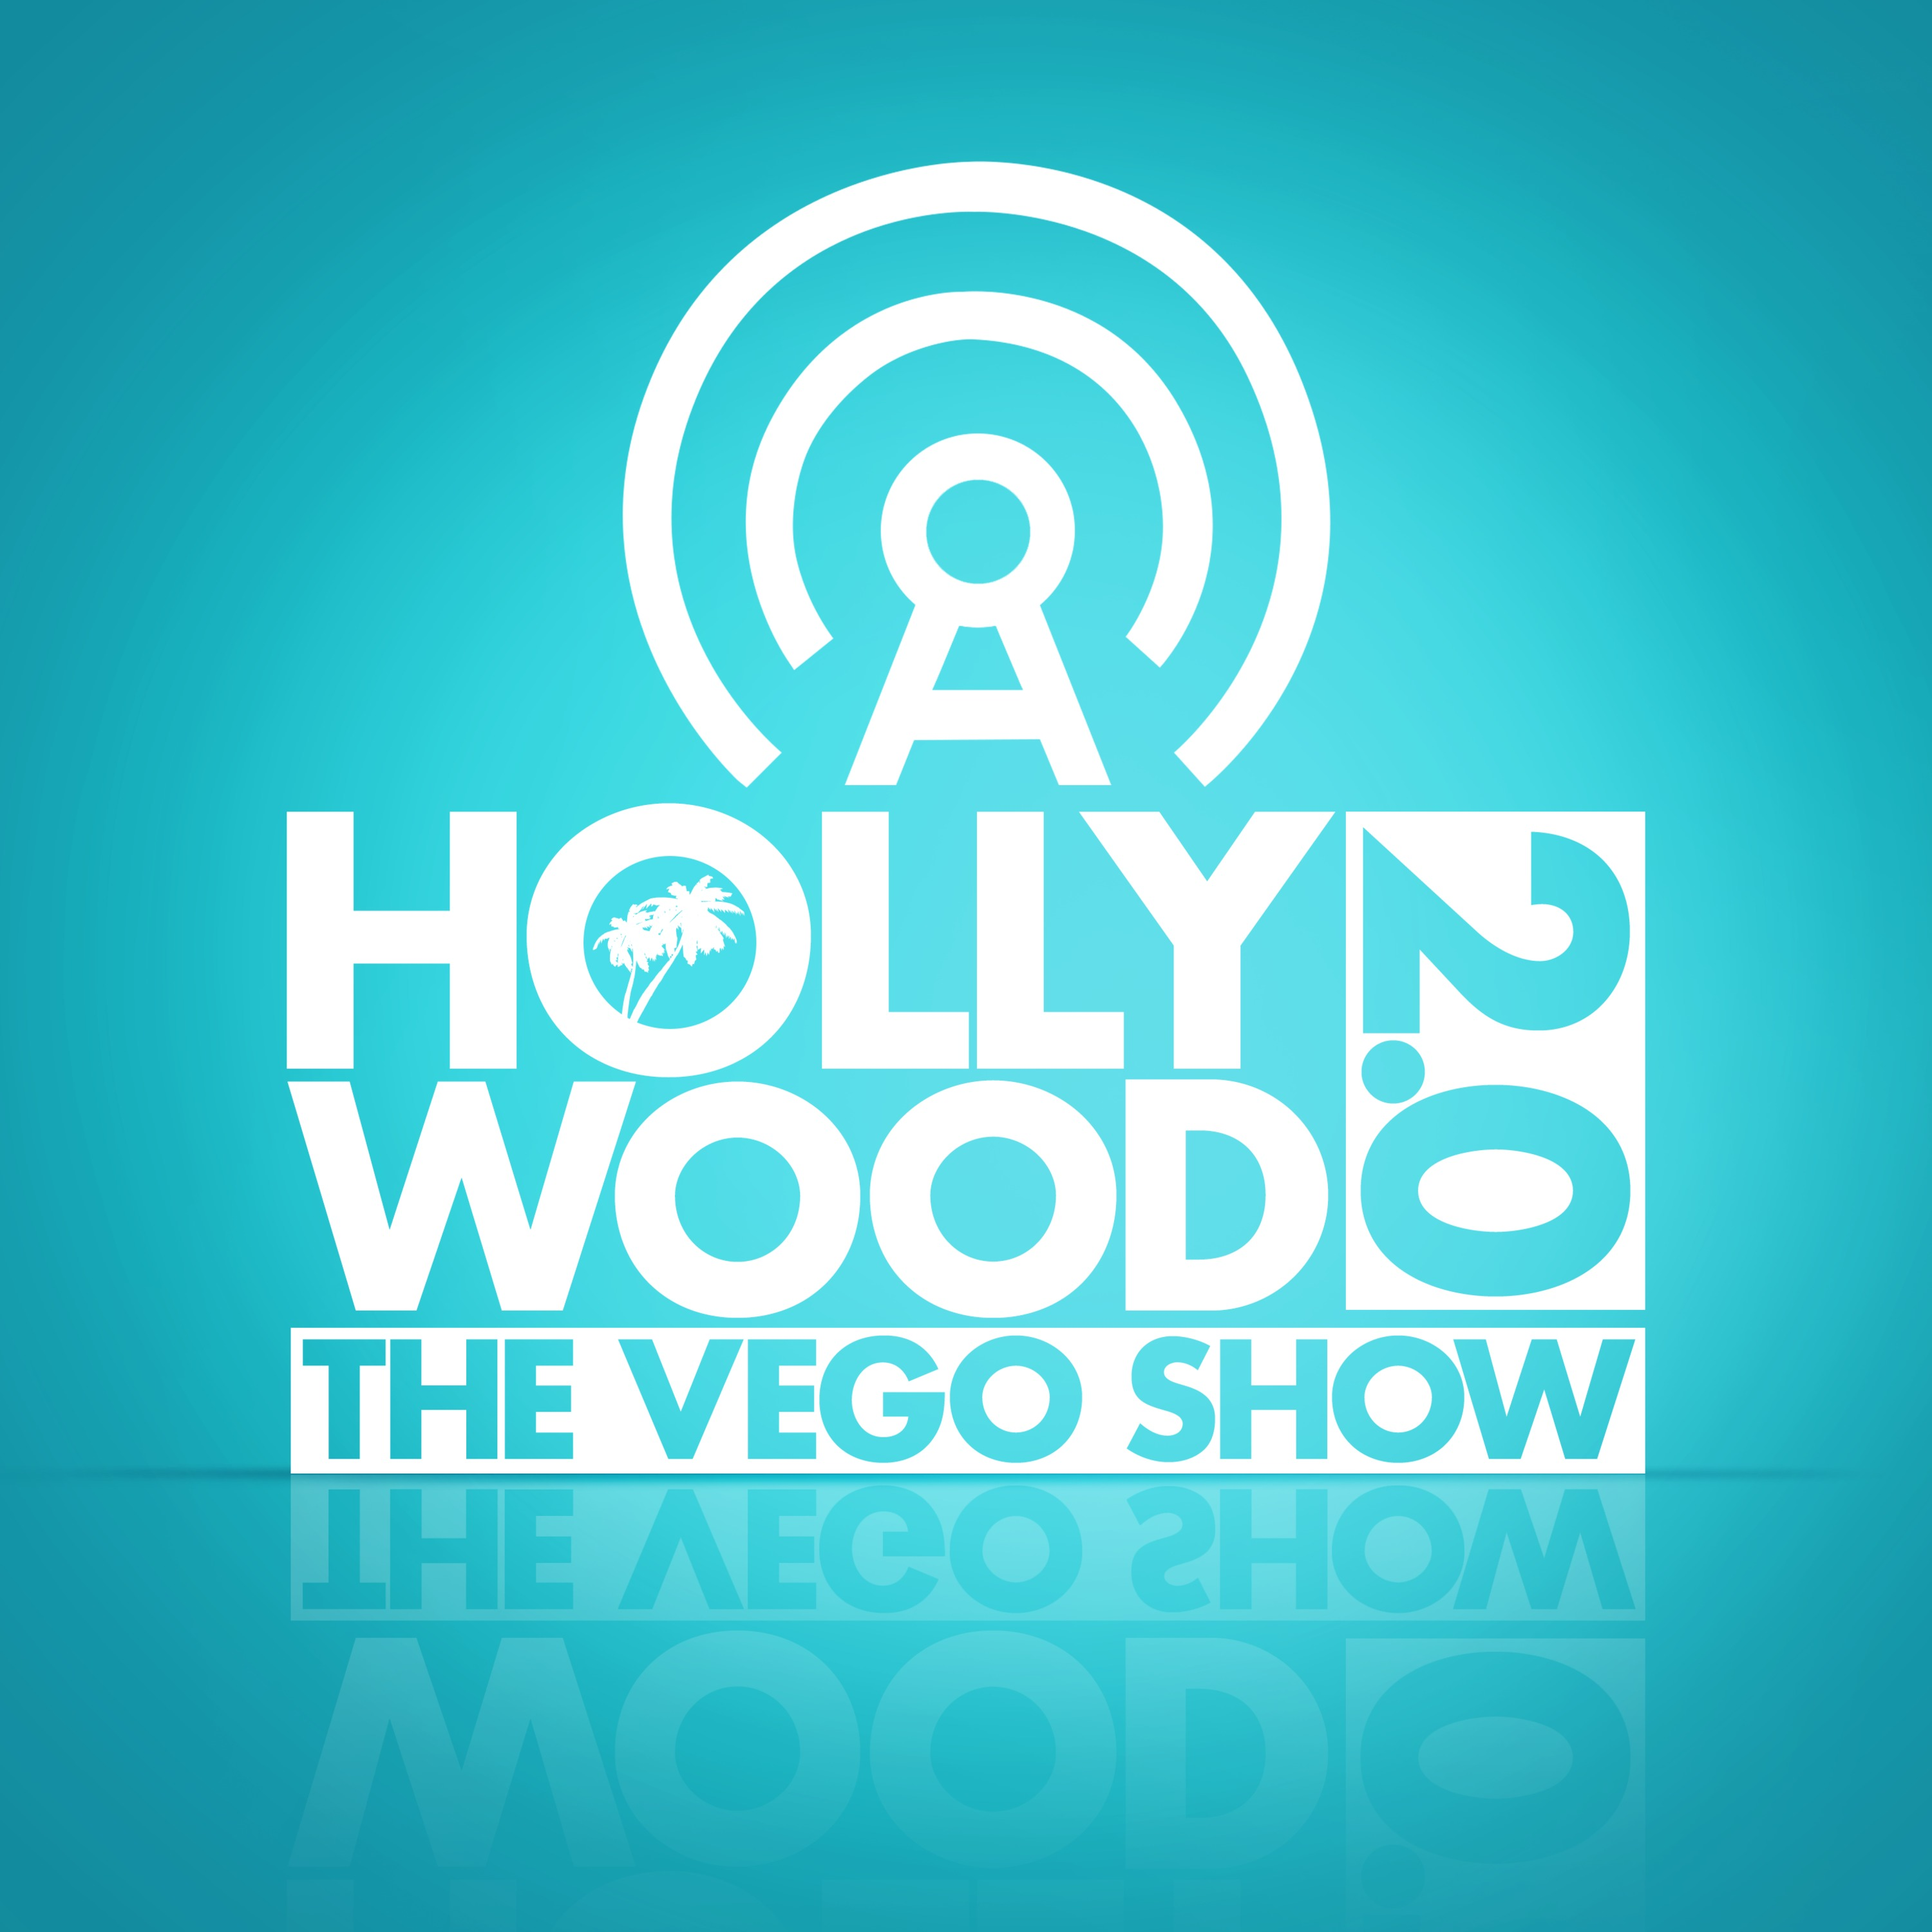 HOLLYWOOD 2.0 - THE VEGO SHOW